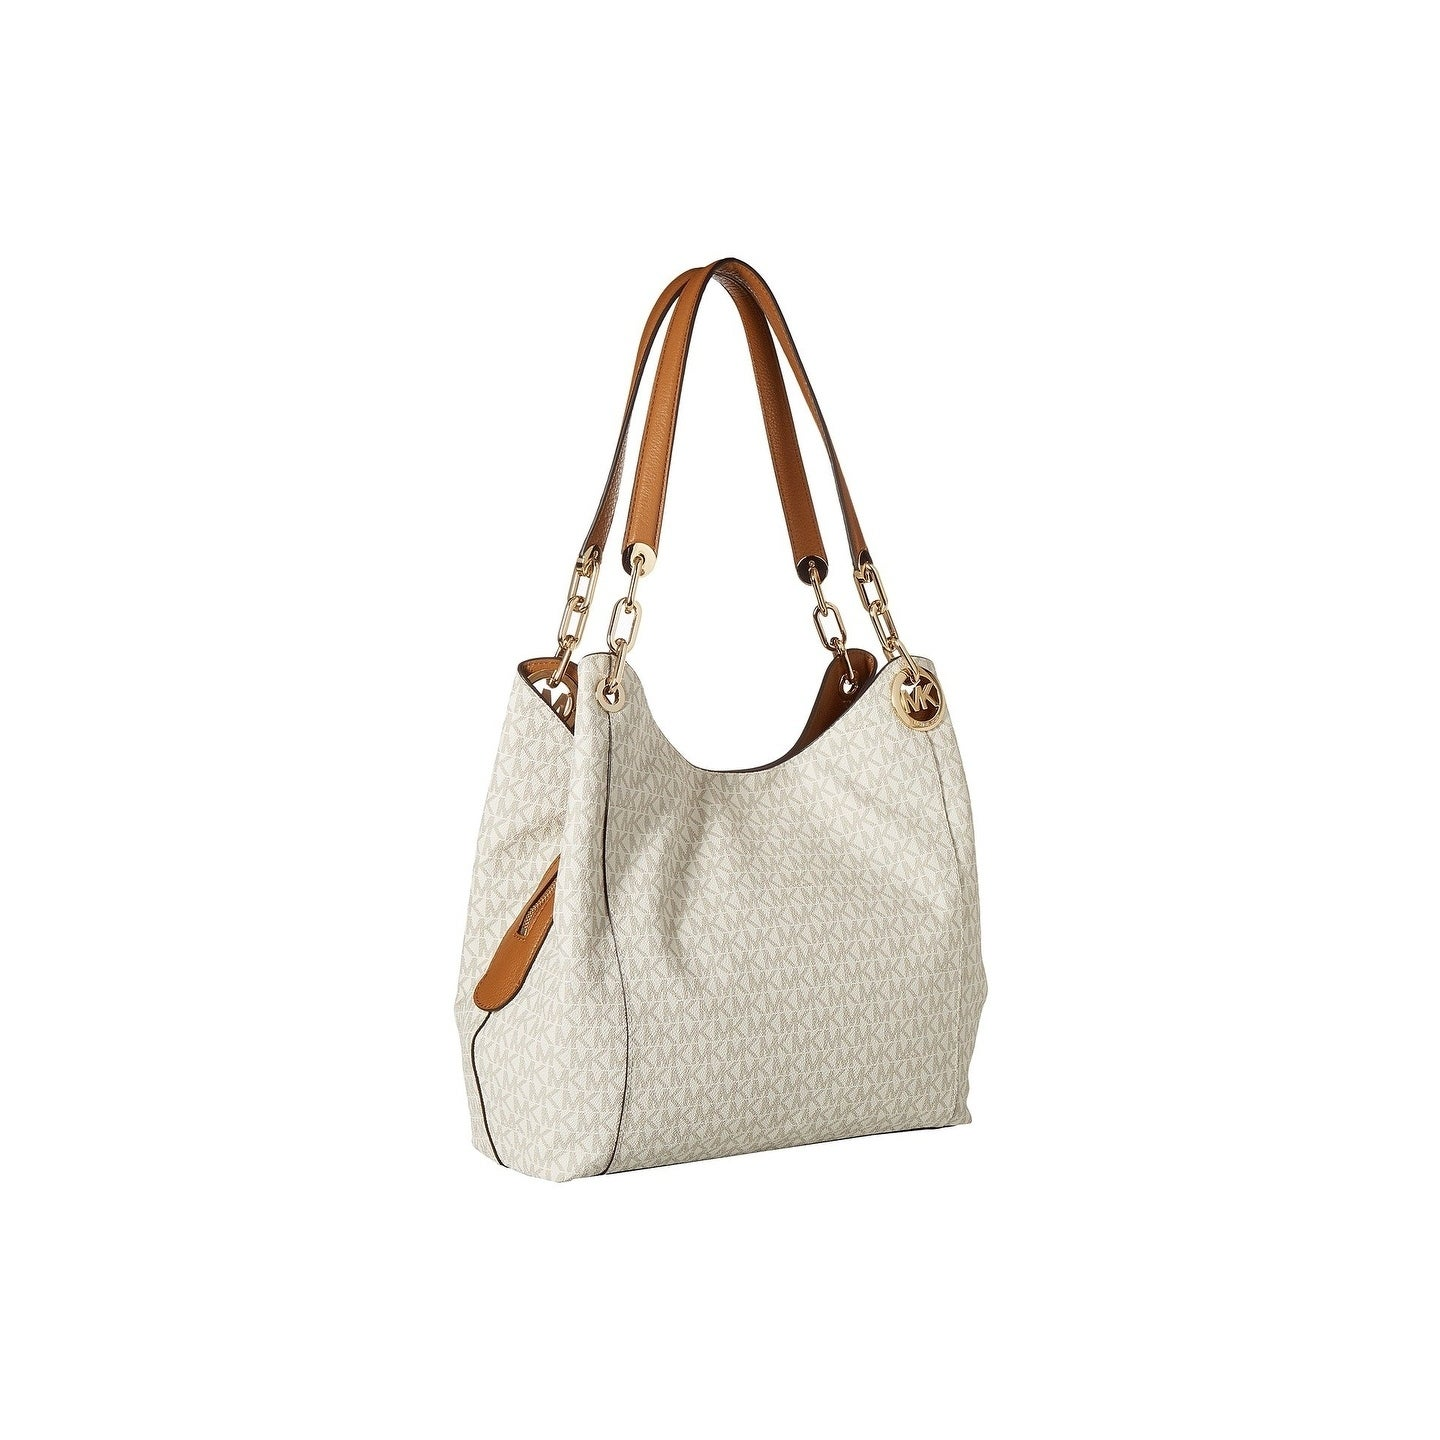 8eb86fd40a8127 Shop MICHAEL Michael Kors Fulton Large Charm Shoulder Tote - On Sale - Free  Shipping Today - Overstock - 22364259